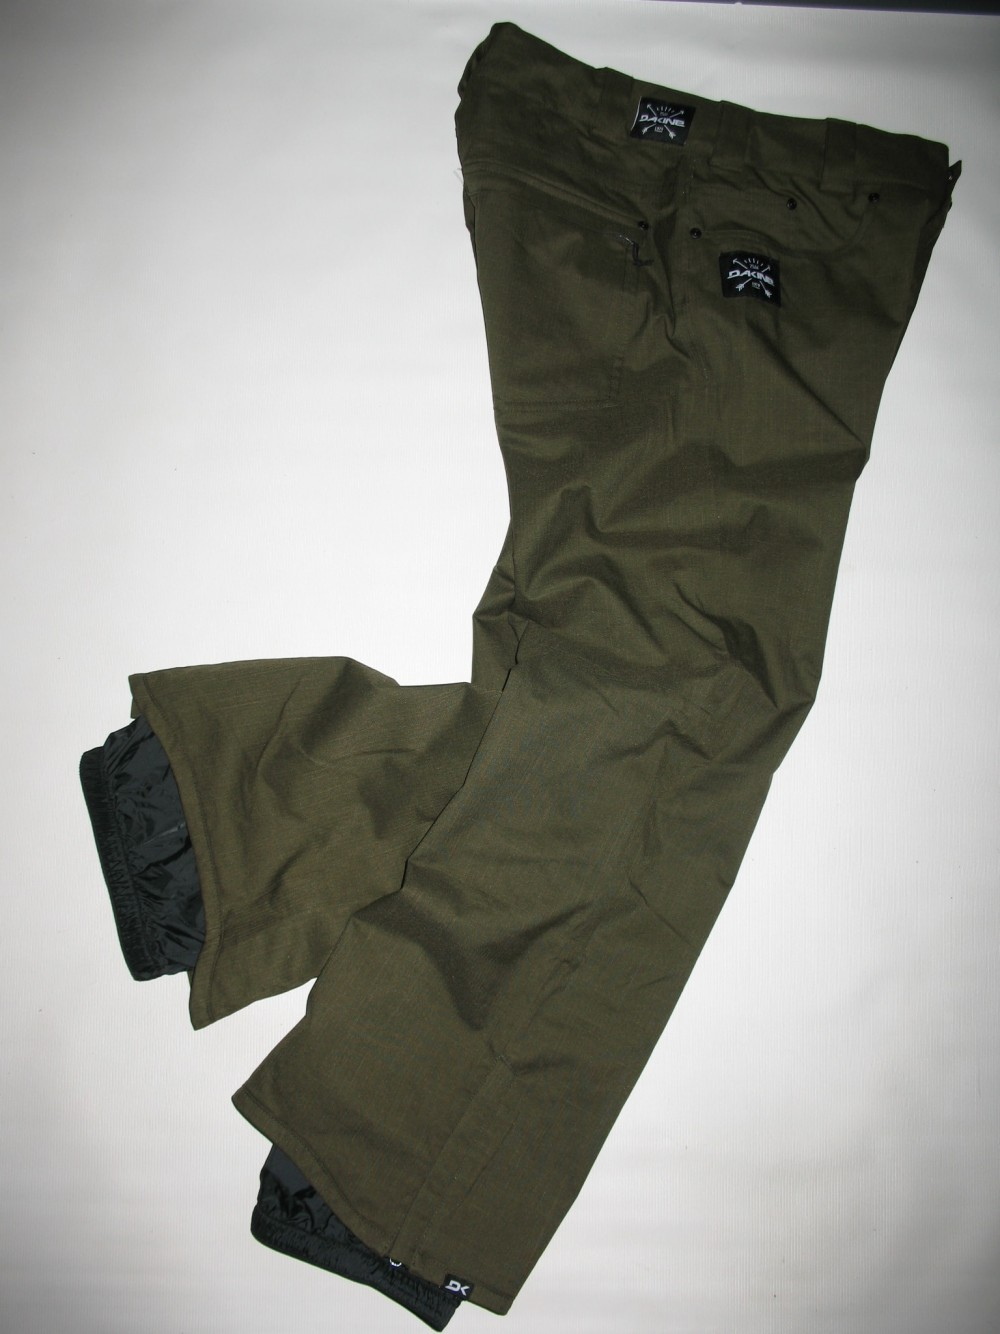 Штаны DAKINE Miner jungle ski/snowboard pants (размер L) - 3